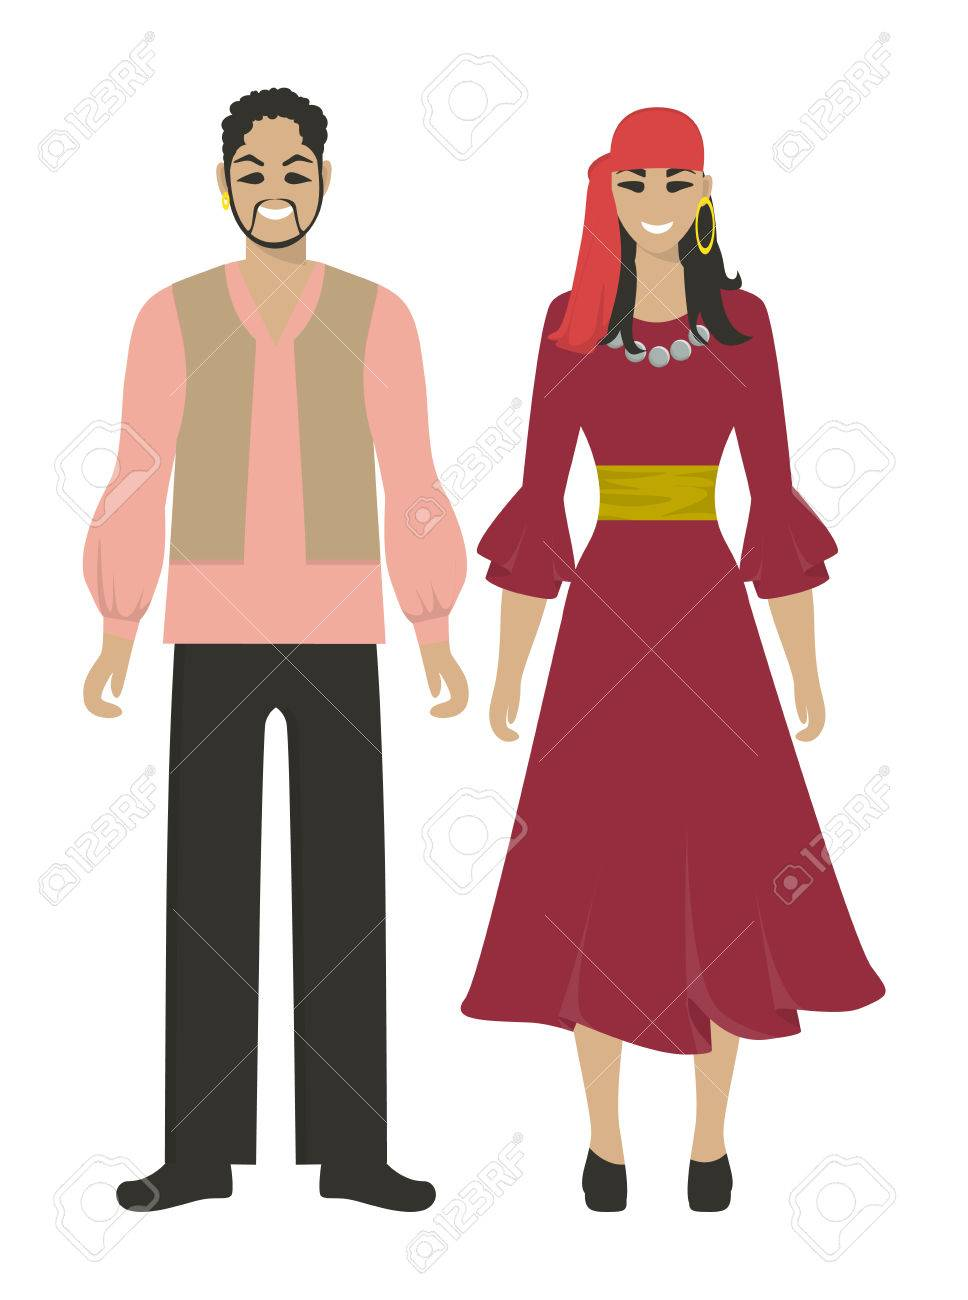 Isolated gypsy couple on white background  Romani people in national